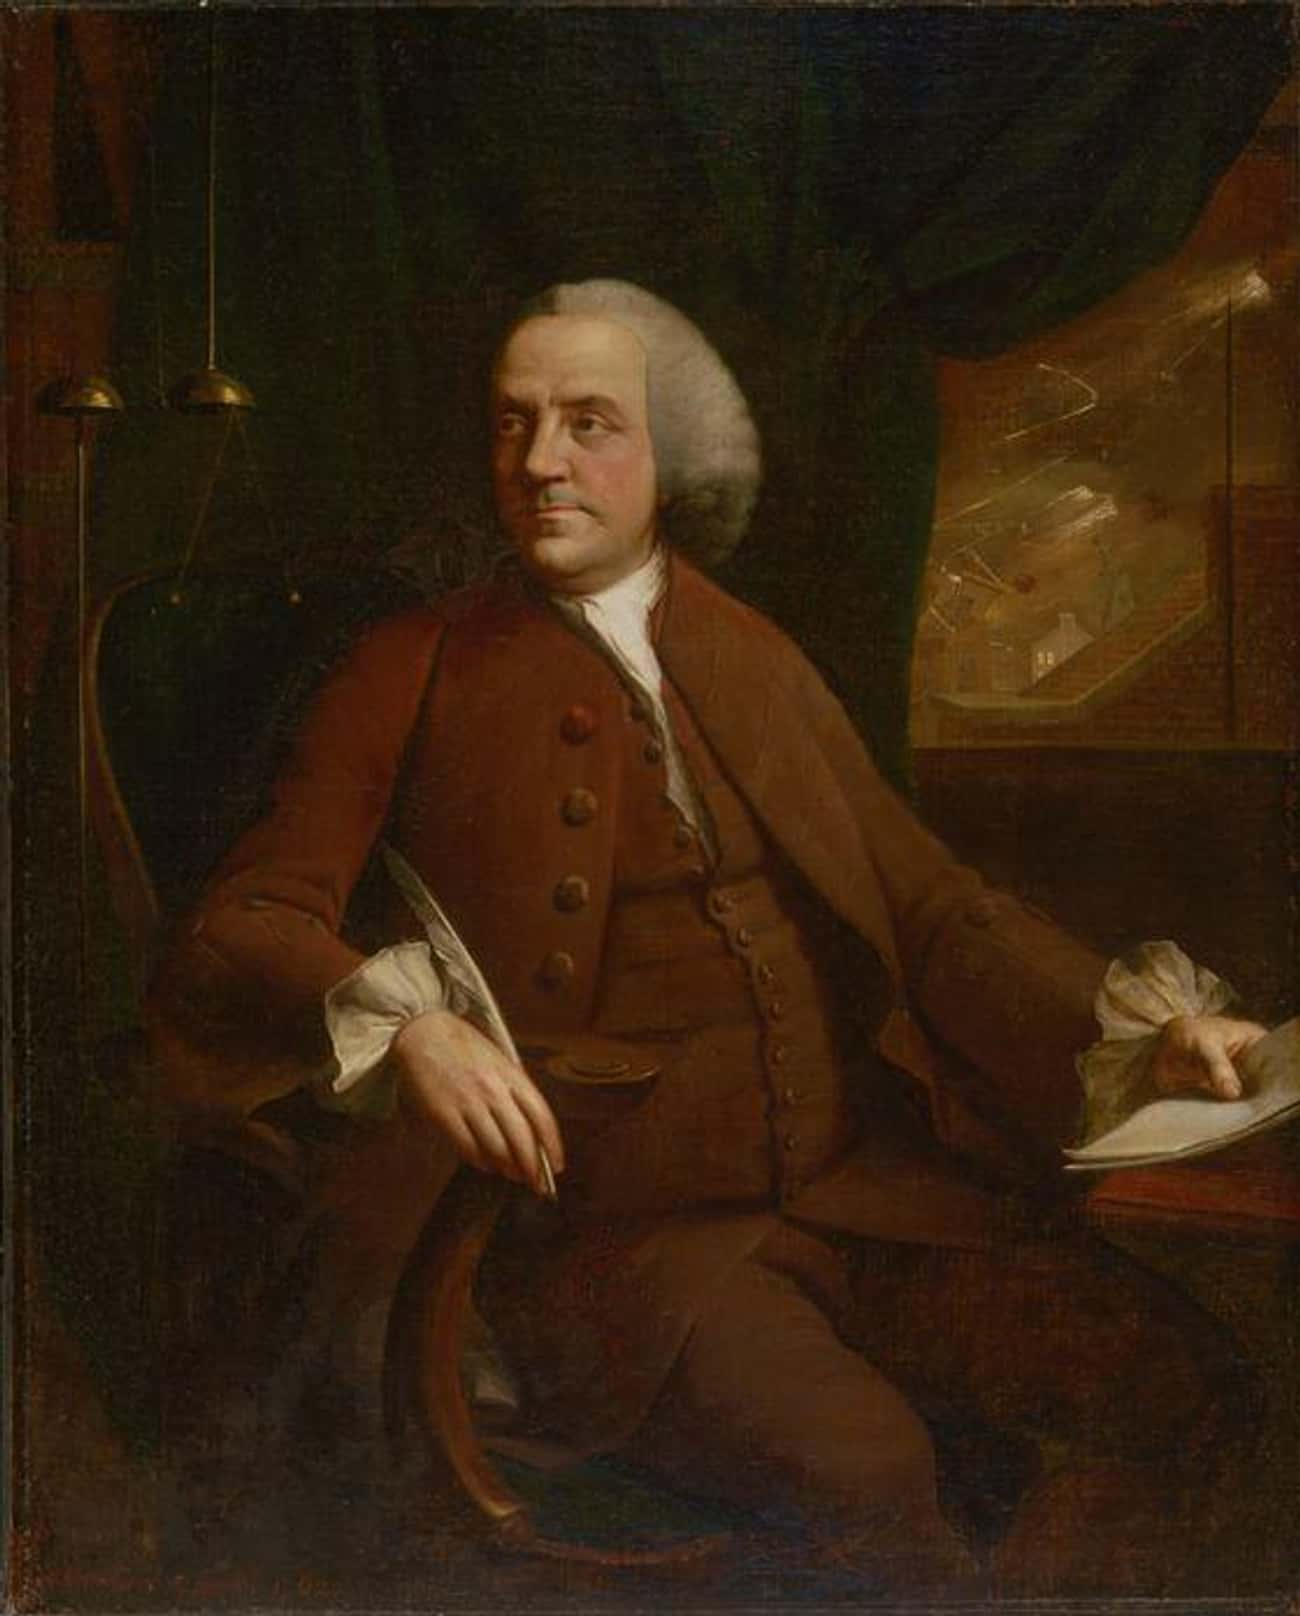 Benjamin Franklin Preferred El is listed (or ranked) 4 on the list Weird And Disgusting Foods The Founding Fathers Ate